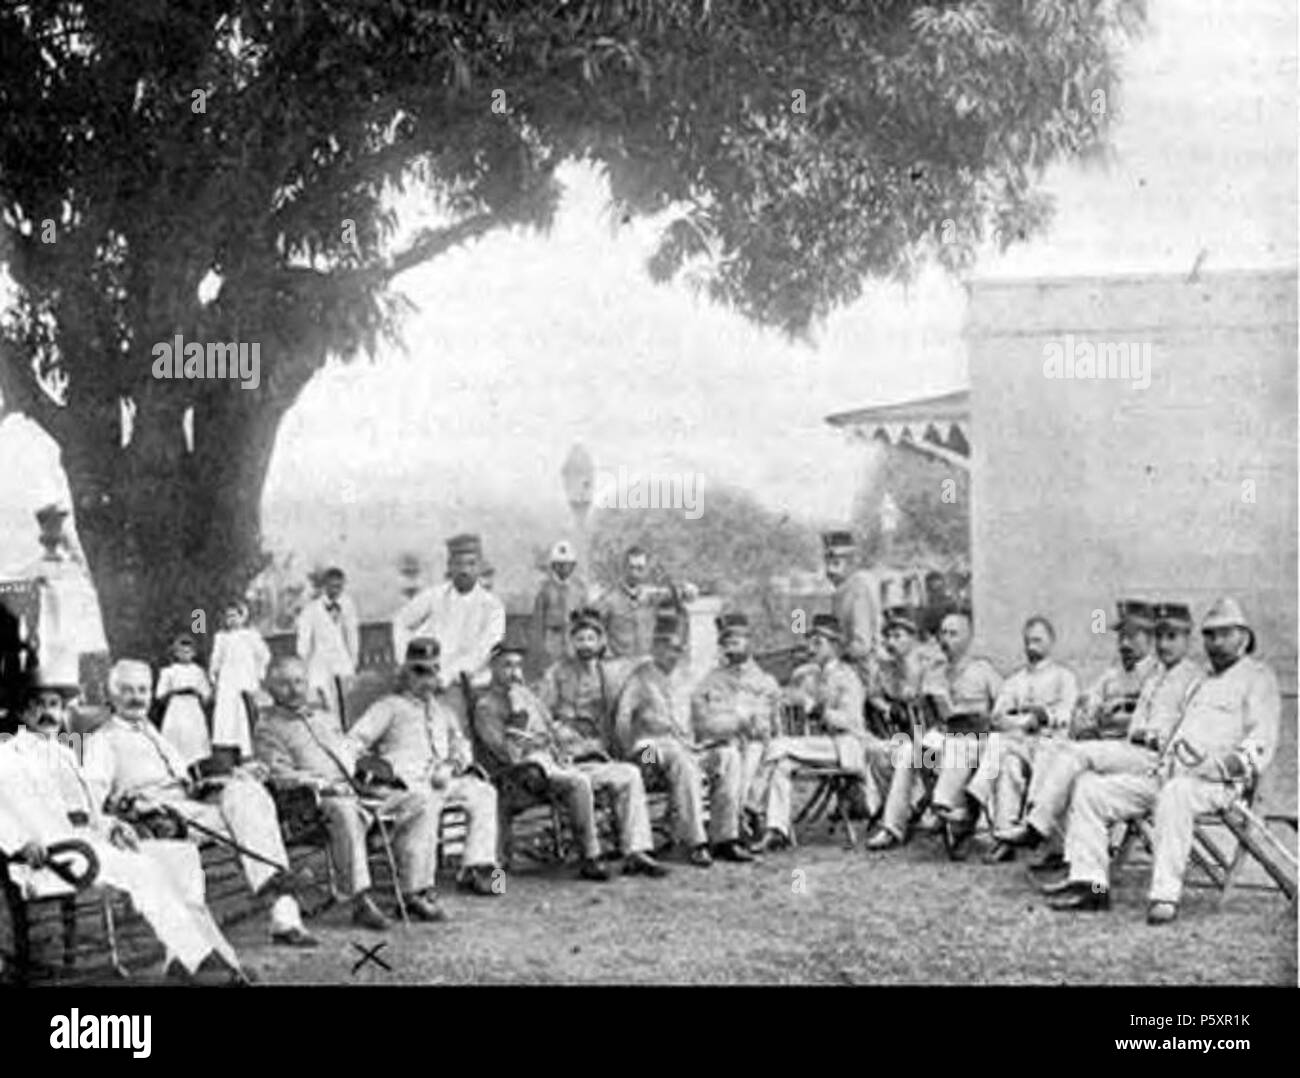 N/A. English: Col. Julio Soto Villanueva with his Staff in Mayaguez in 1898 . 1898. Unknown The image was taken over 119 years ago therefore it is assumed that the author is no longer alive. 365 Col. Julio Soto Villanueva and staff (1898) - Stock Image